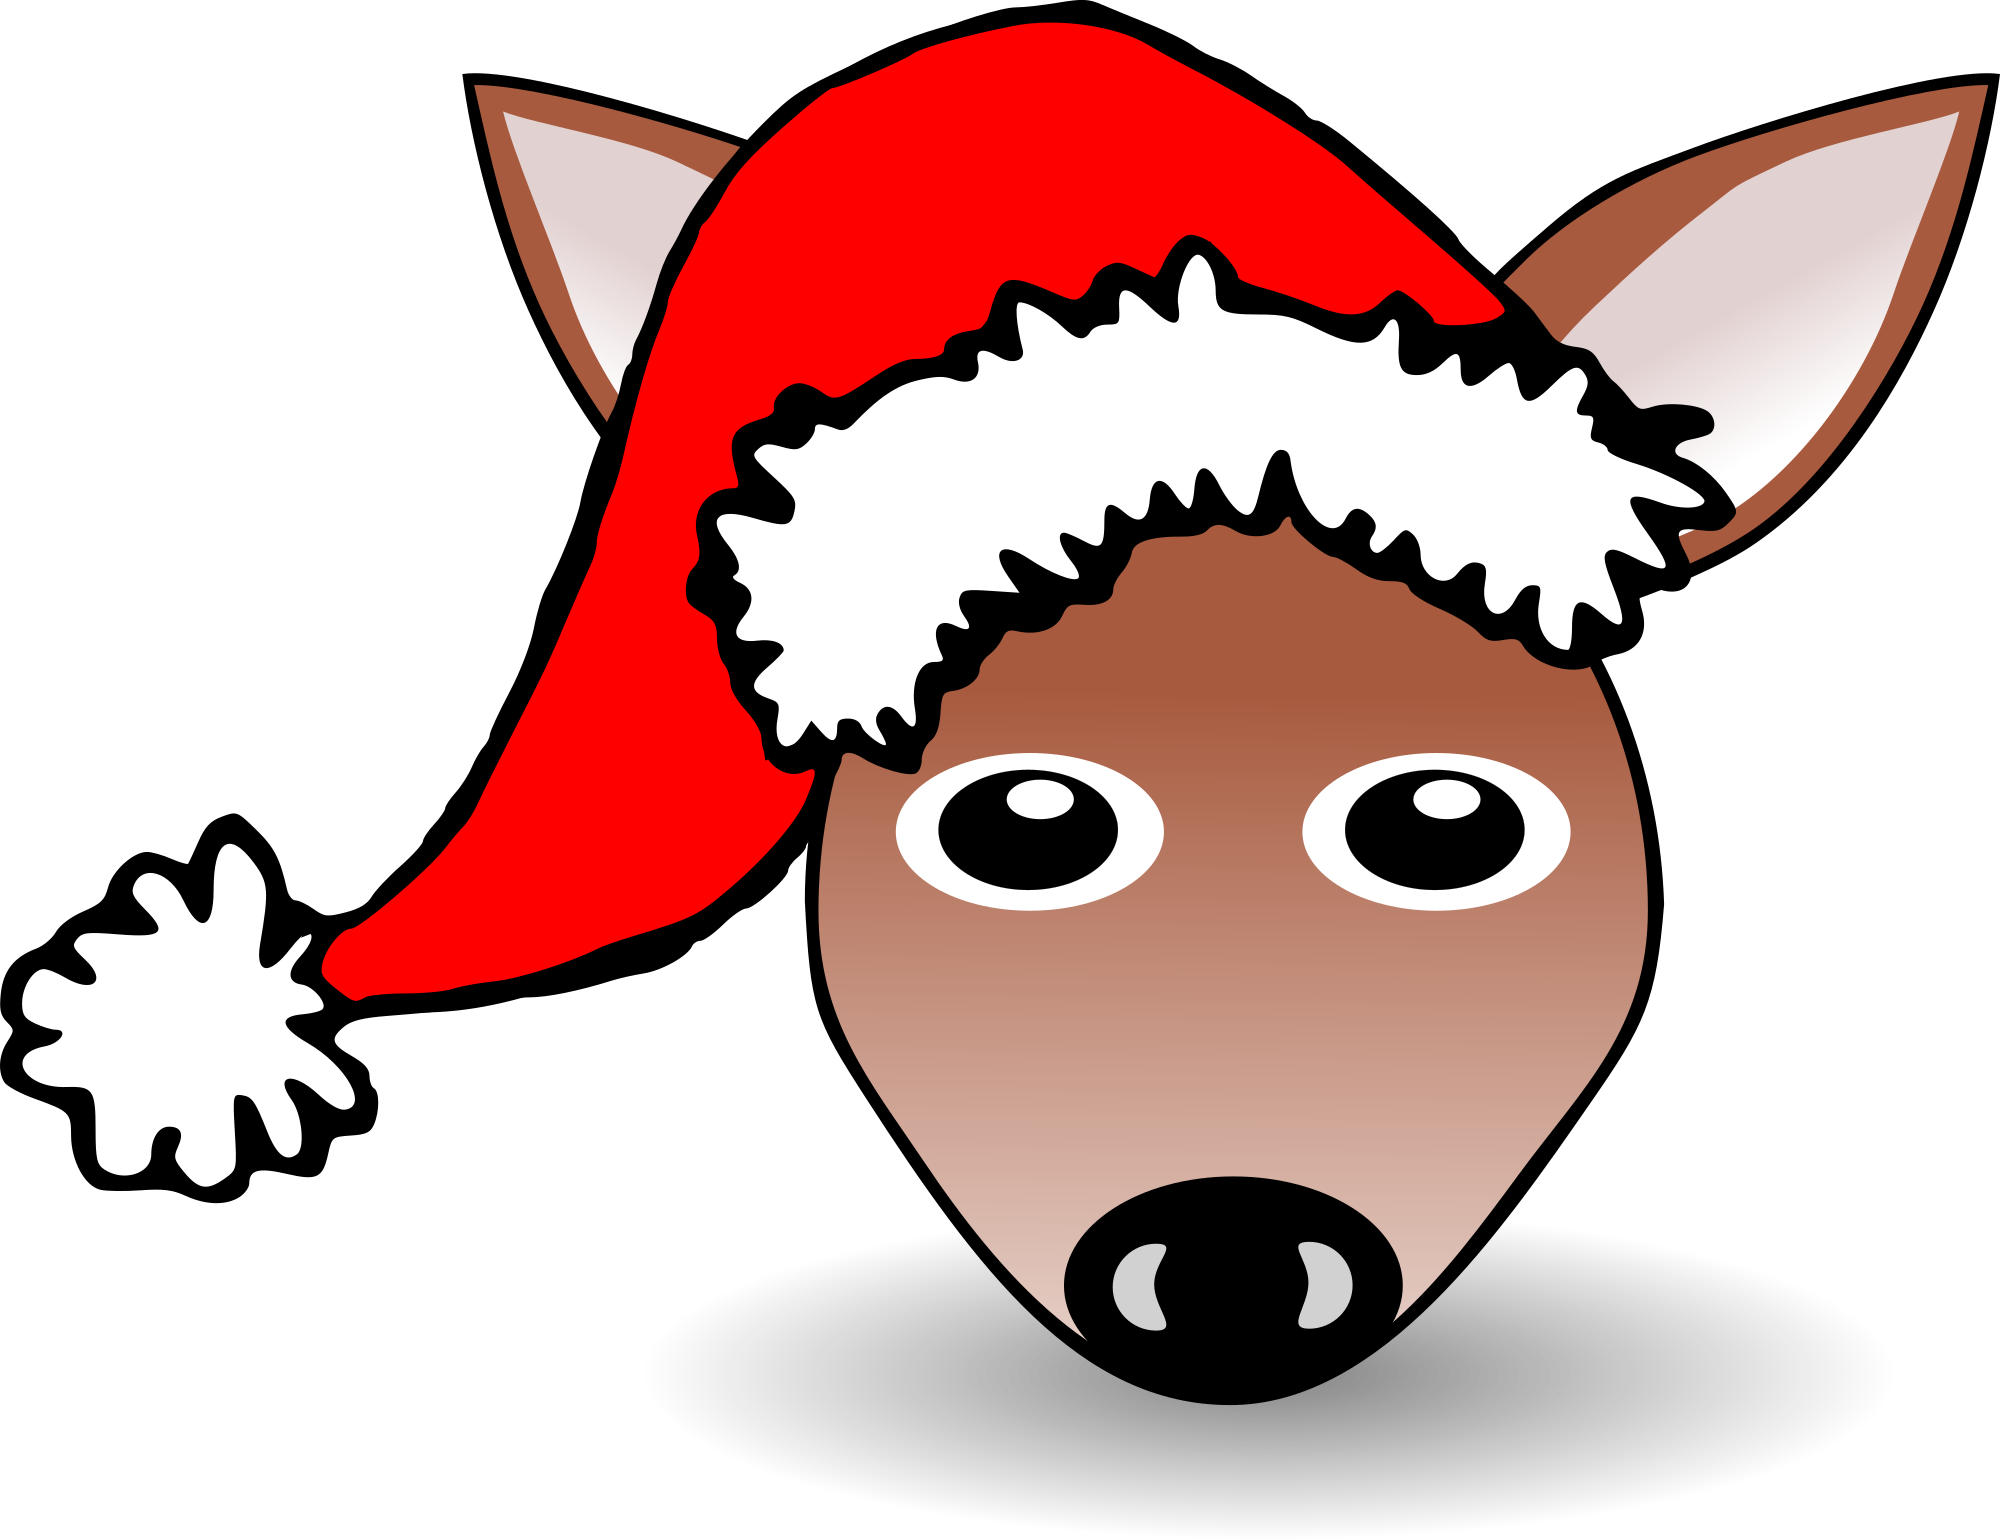 Funny Fawn Face Brown Cartoon With Santa Claus Hat Clipart png free, Funny Fawn Face Brown Cartoon With Santa Claus Hat transparent png